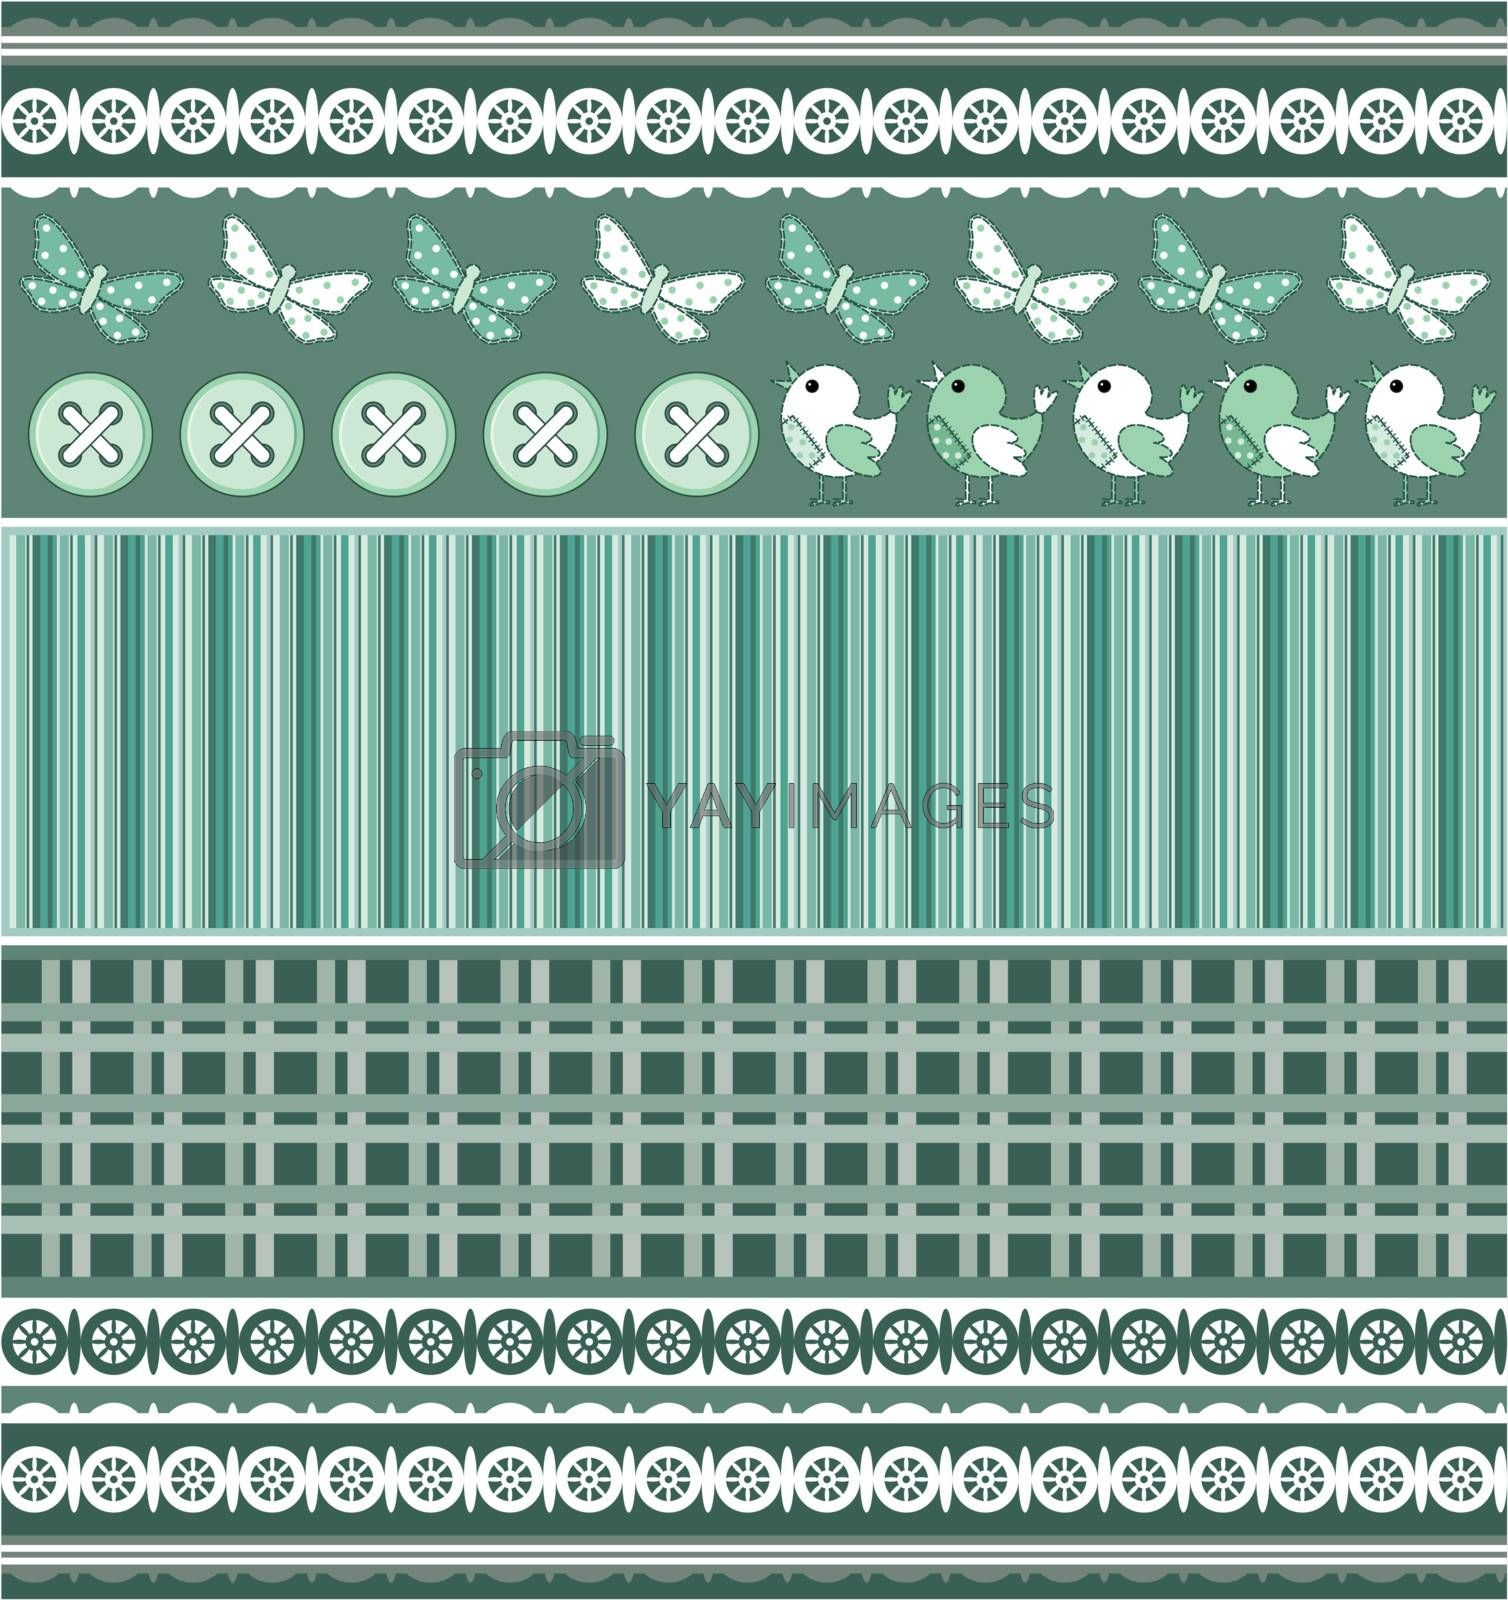 Scrapbook template with birds in shades of green.